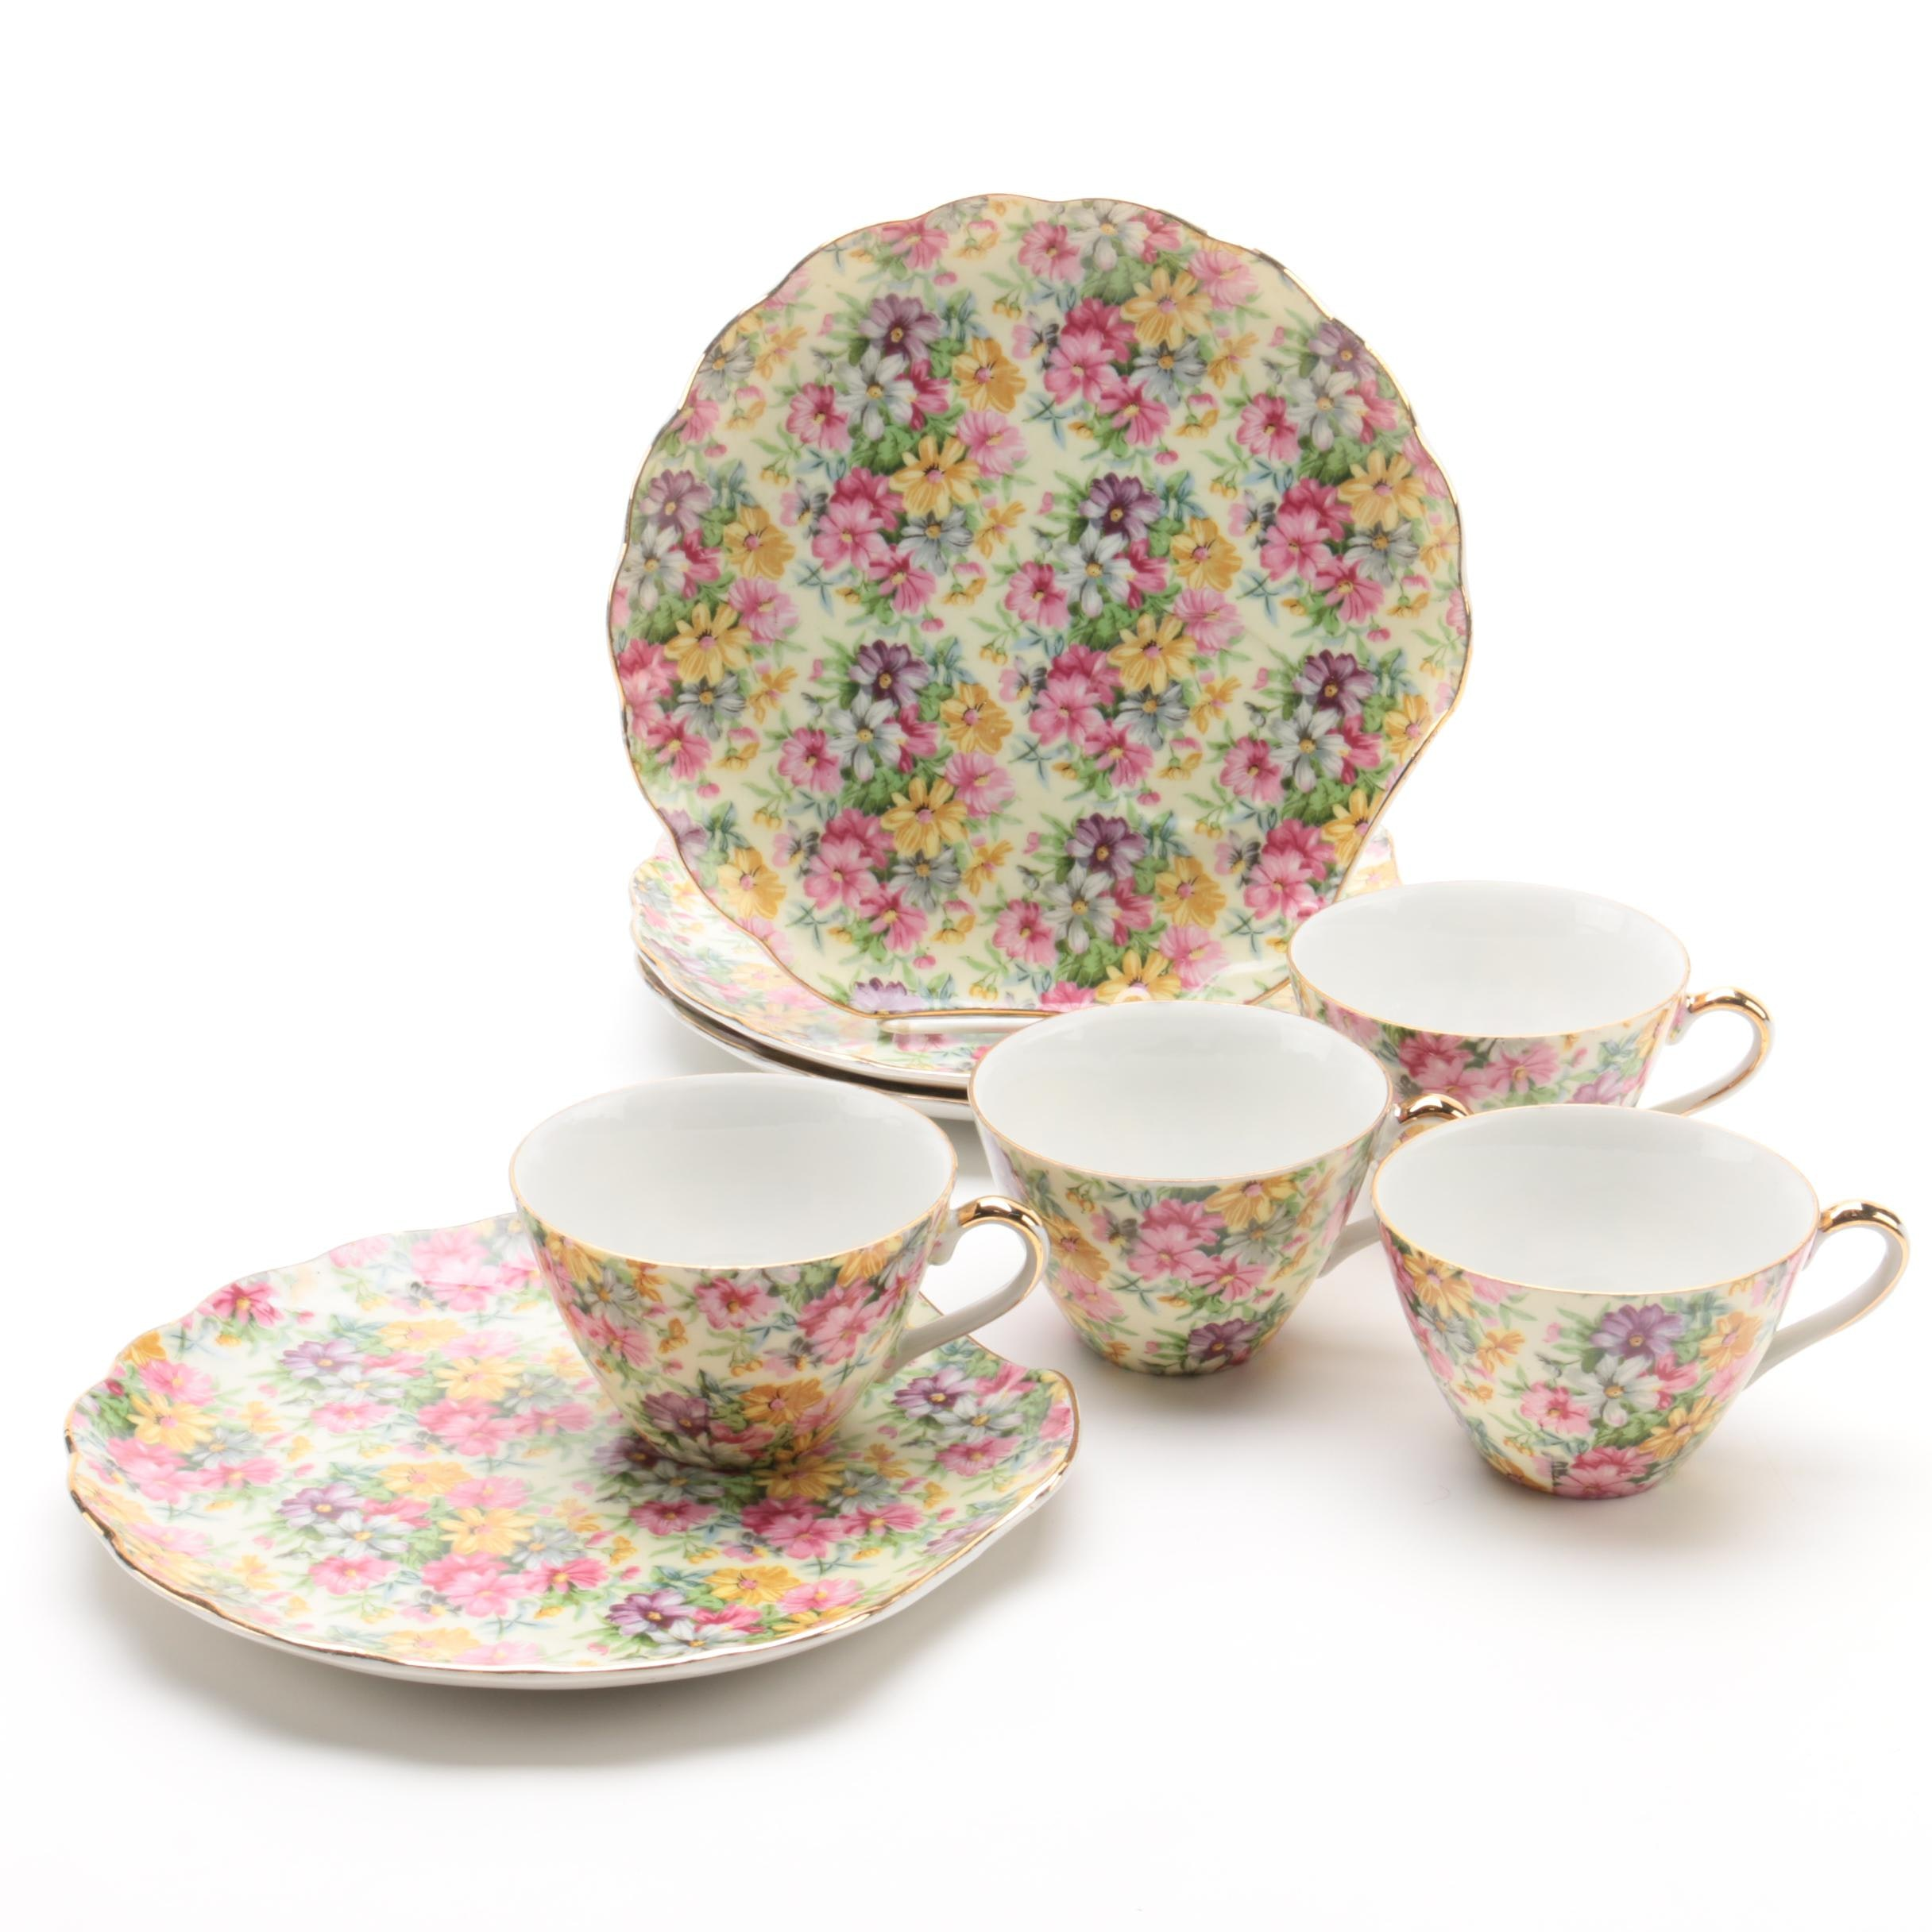 Floral Porcelain Teacup and Snack Plate Set for Four